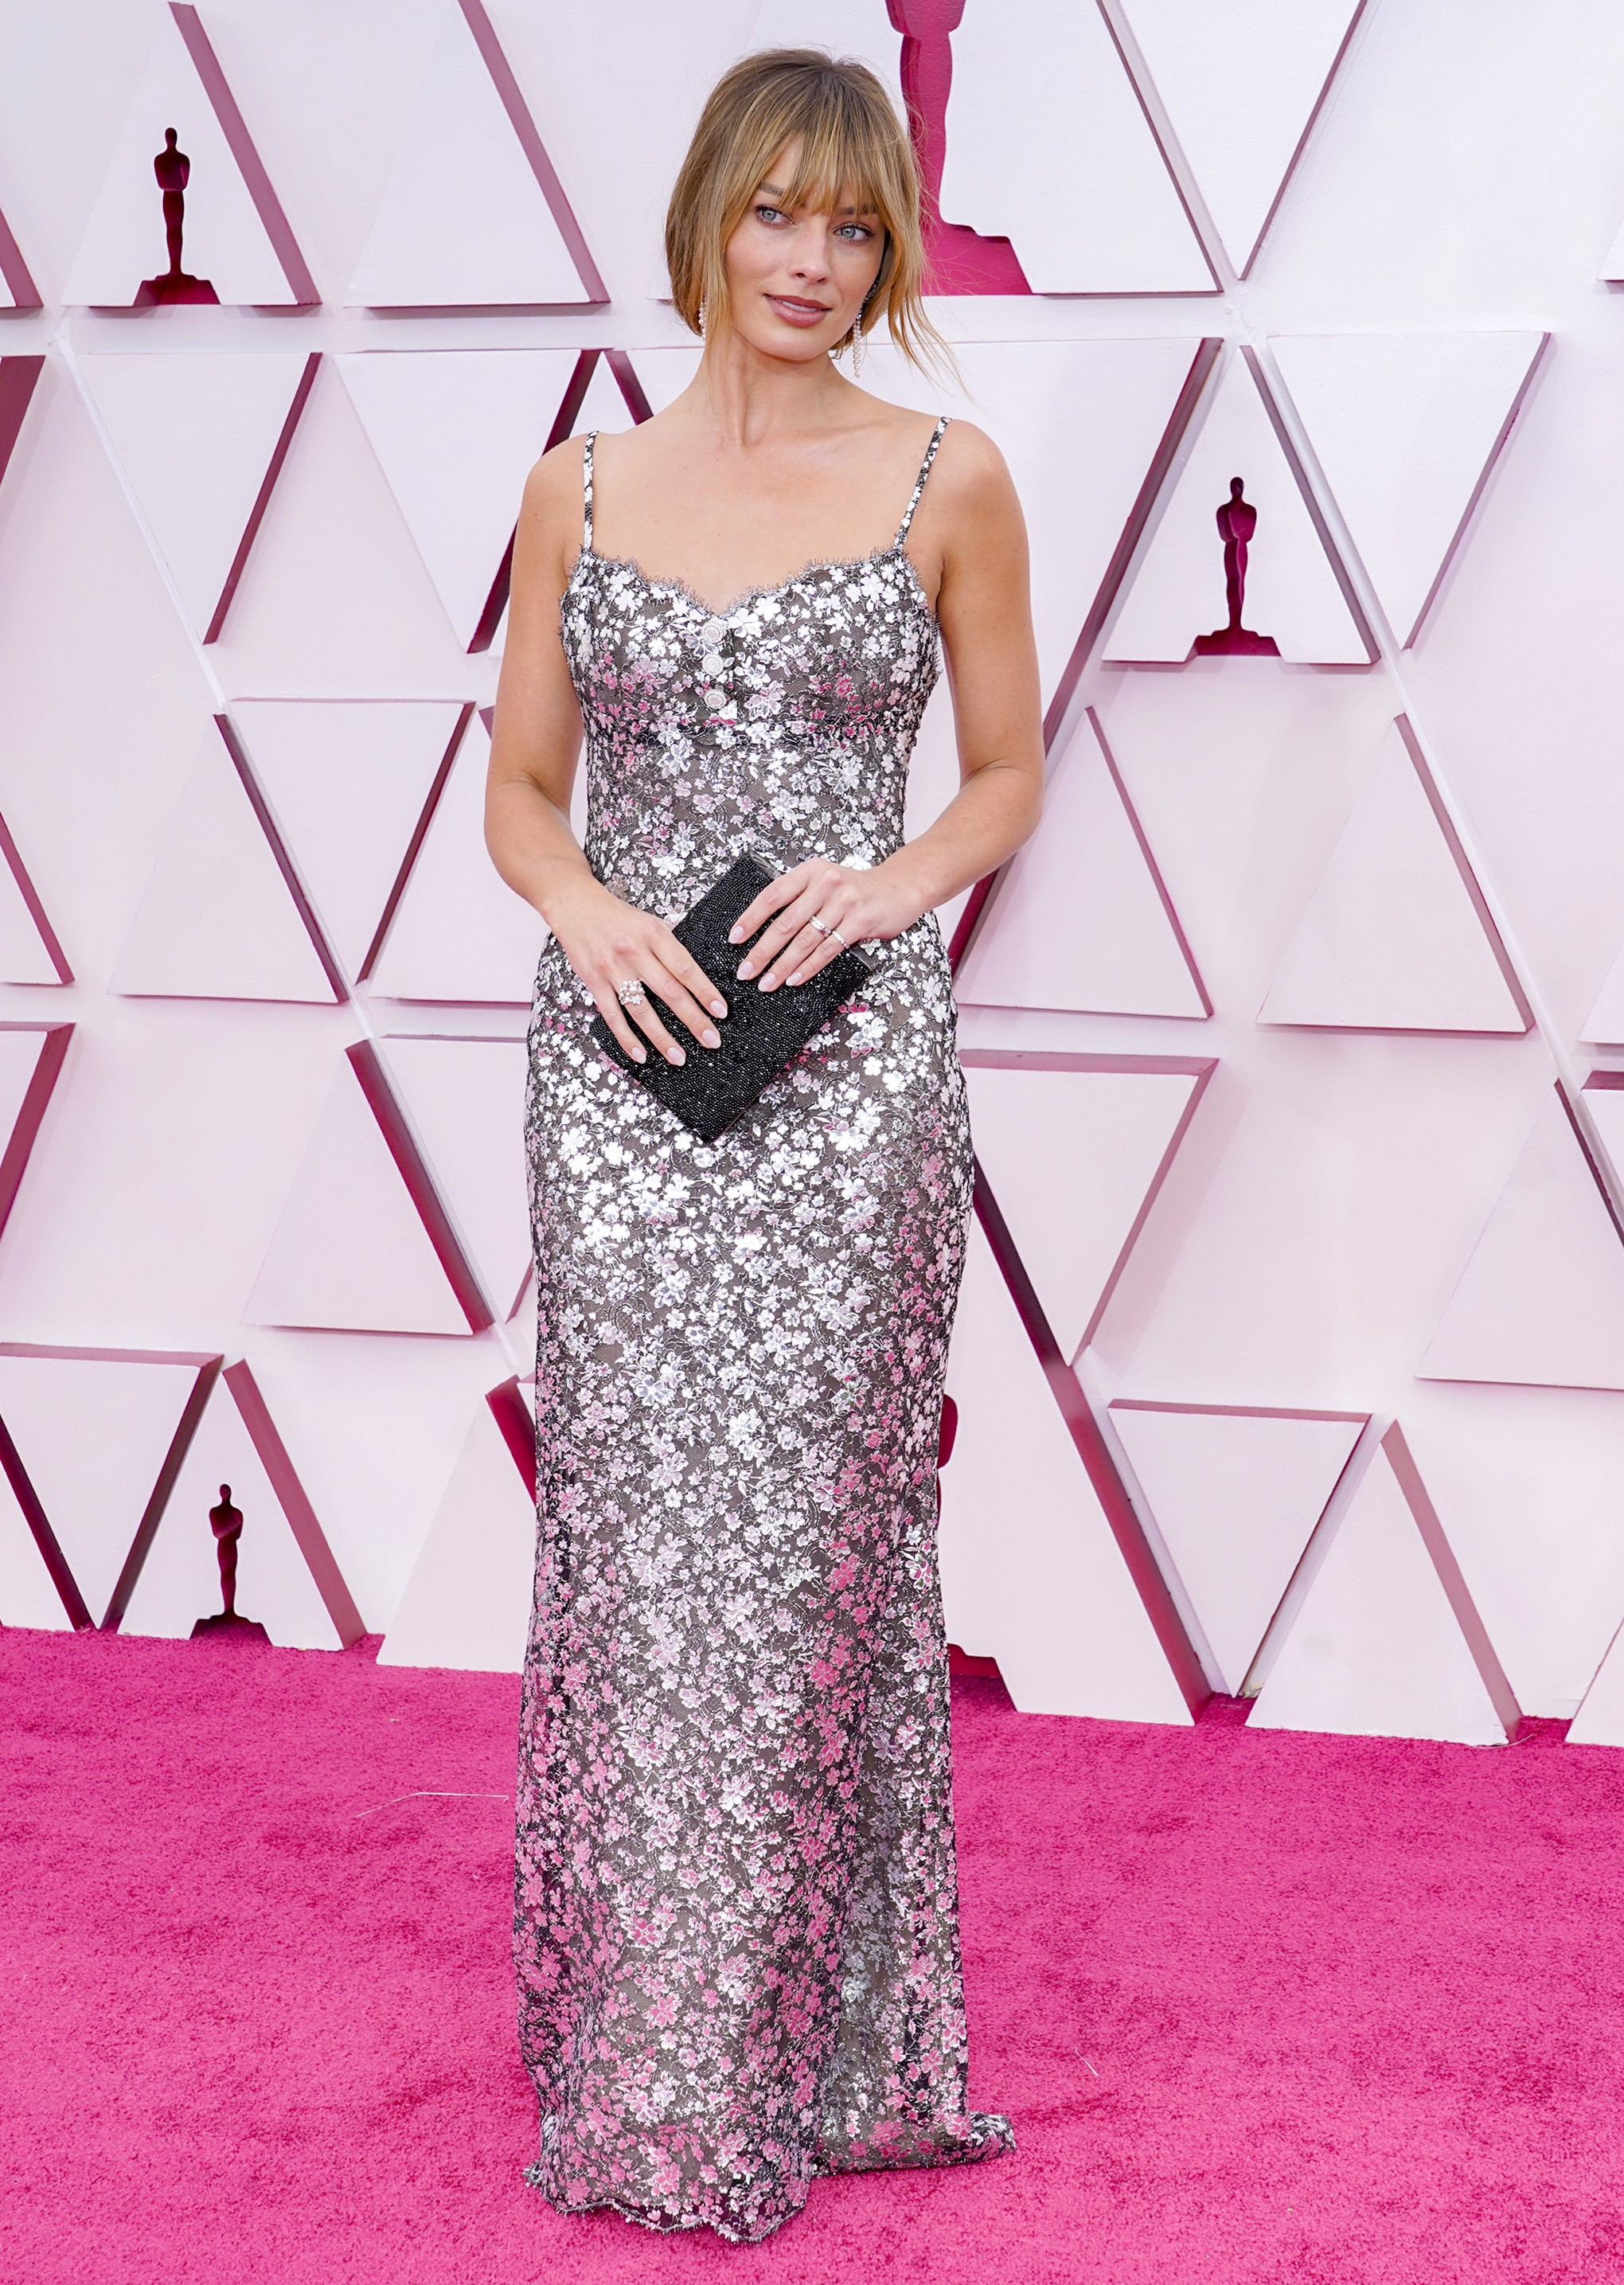 LOS ANGELES, CALIFORNIA – APRIL 25: Margot Robbie attends the 93rd Annual Academy Awards at Union Station on April 25, 2021 in Los Angeles, California. (Photo by Chris Pizzello-Pool/Getty Images) (Foto: Getty Images)